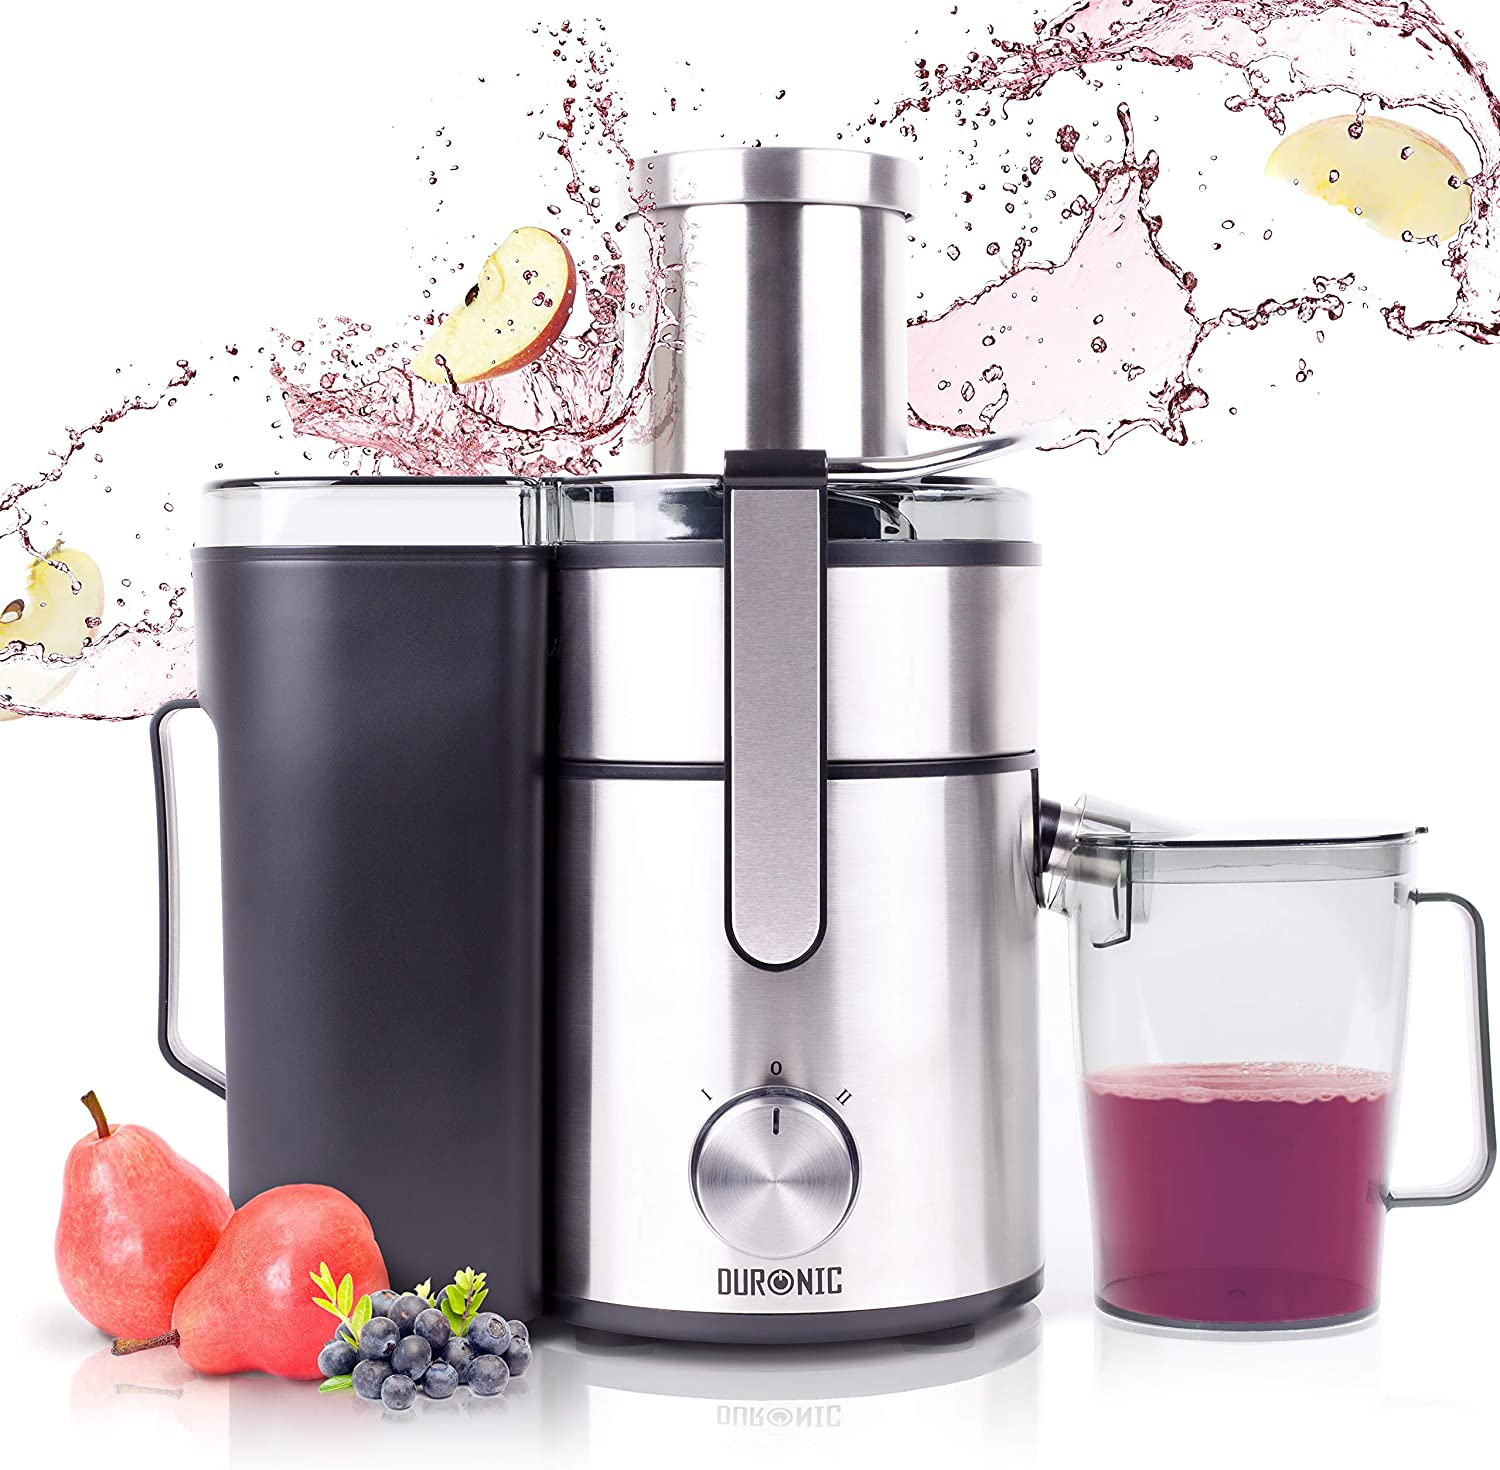 Duronic Juicer JE10 Whole Fruit and Vegetable Juicer Powerful 1000W Large Feeding Tube Centrifugal Power Juicer Machine